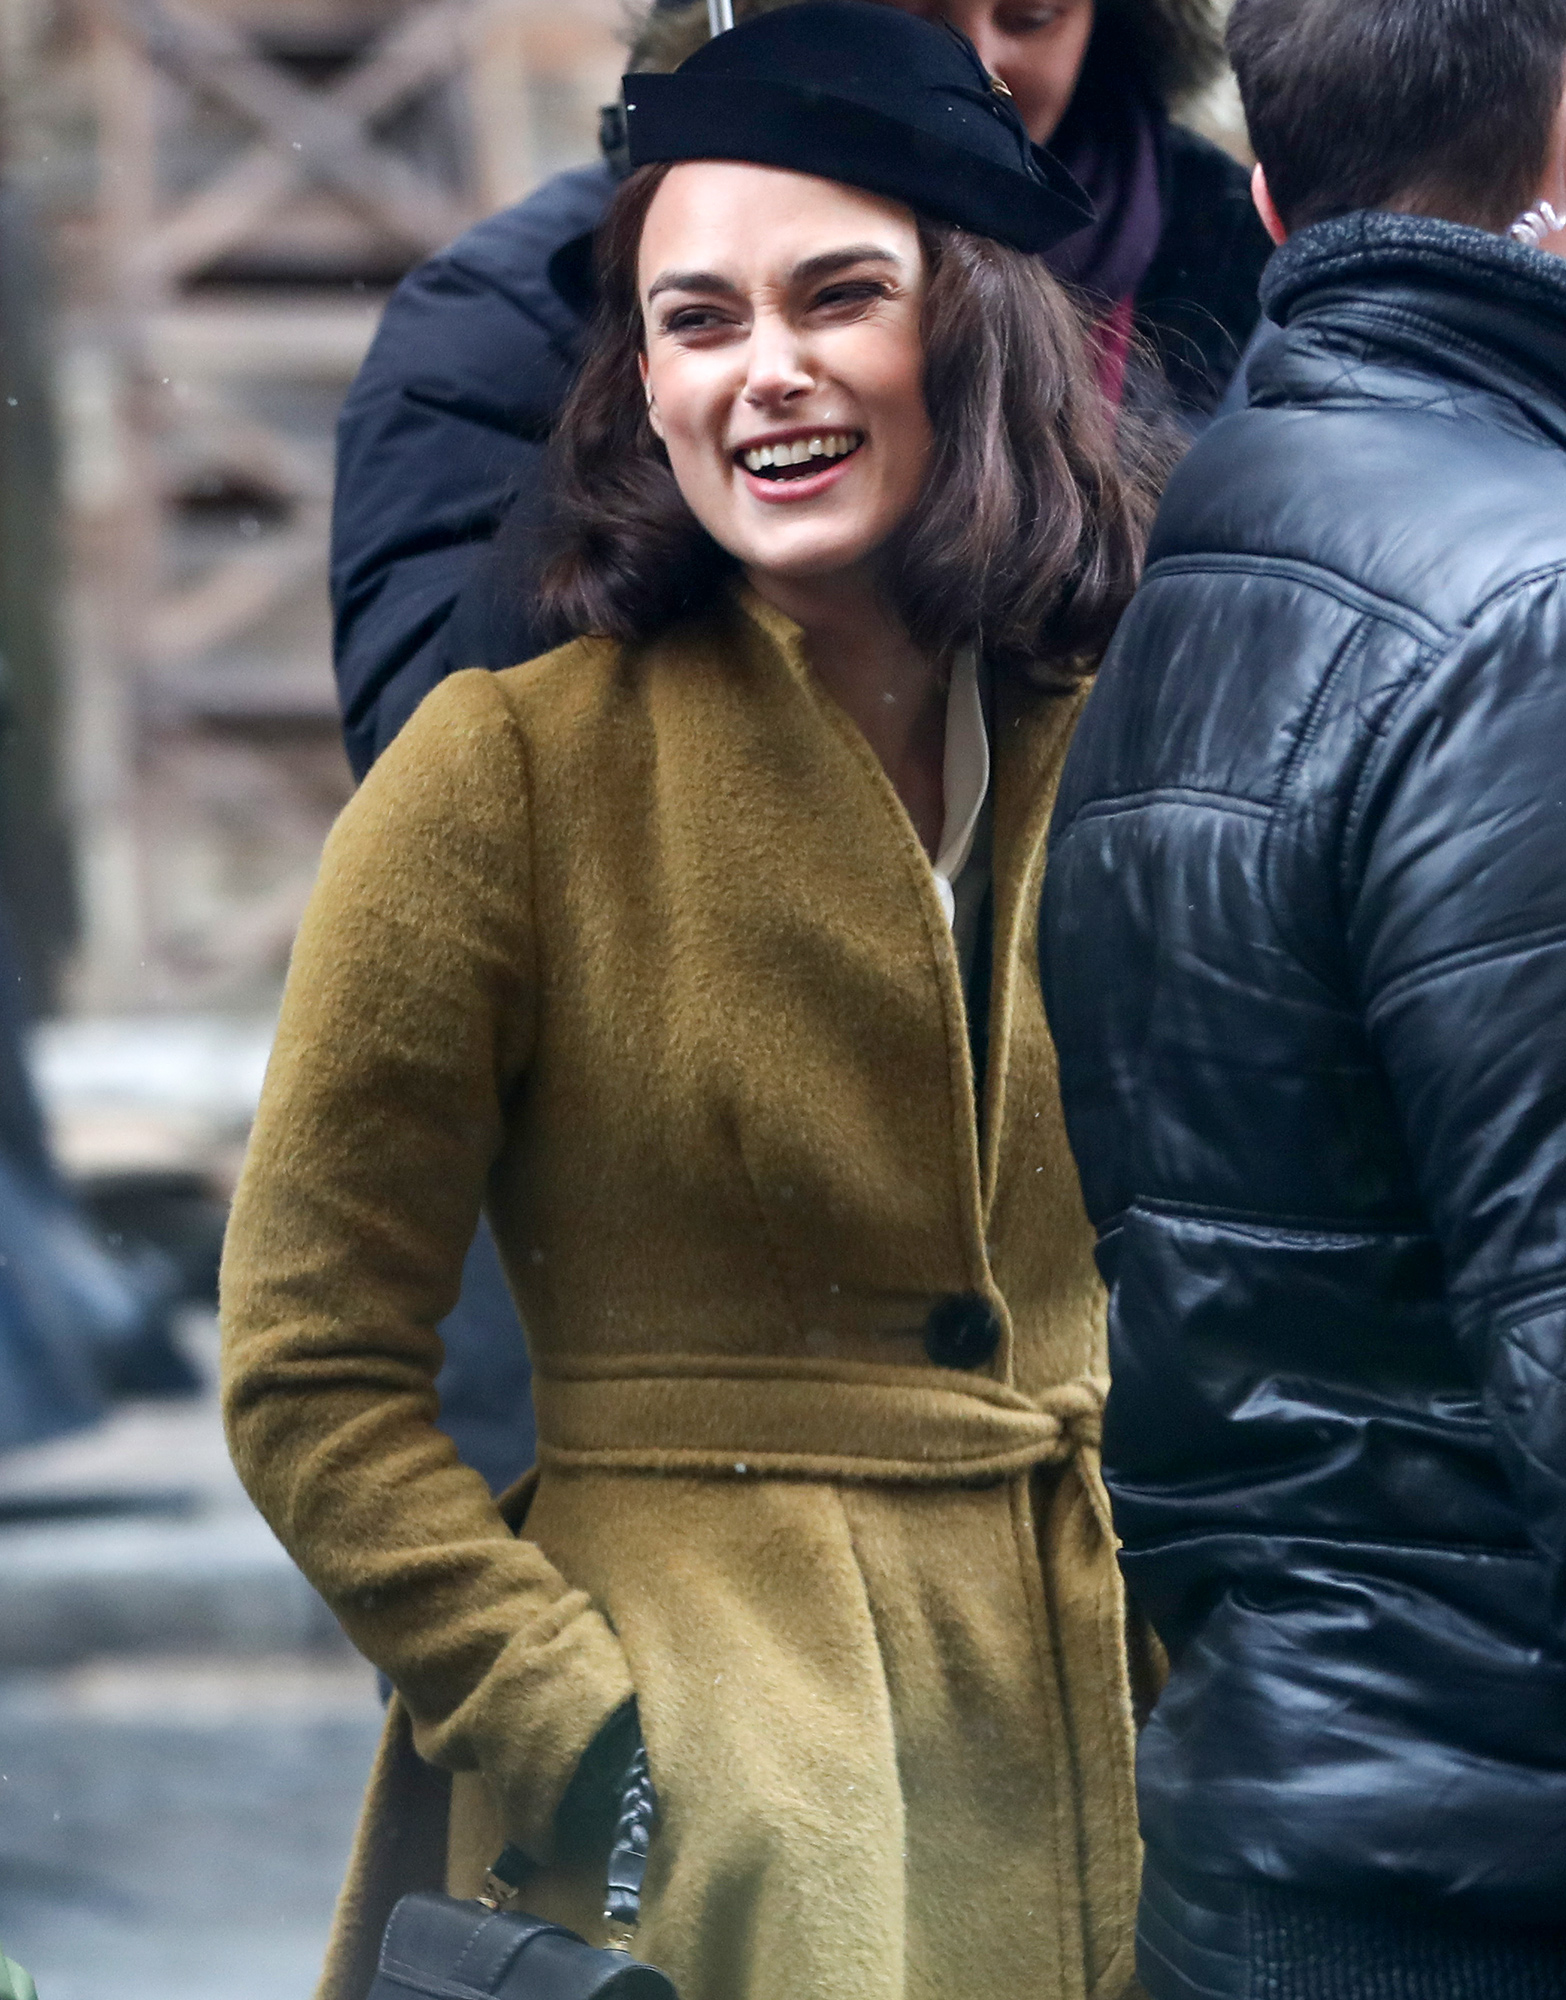 EXCLUSIVE: Keira Knightley seen filming for 'The Aftermath' in Prague